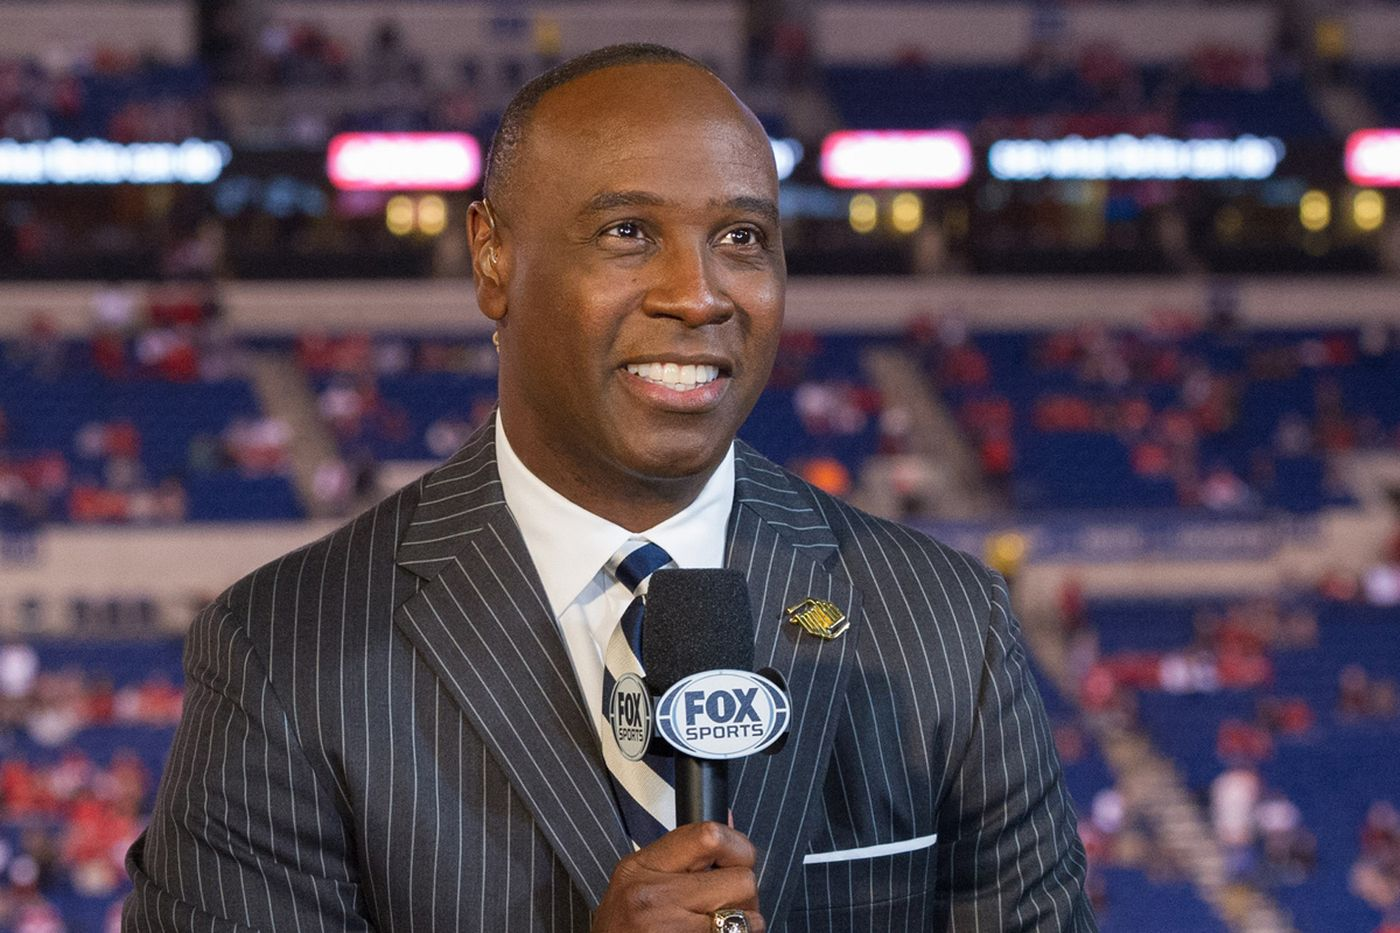 Sunday is Fox' Charles Davis biggest broadcast day ever